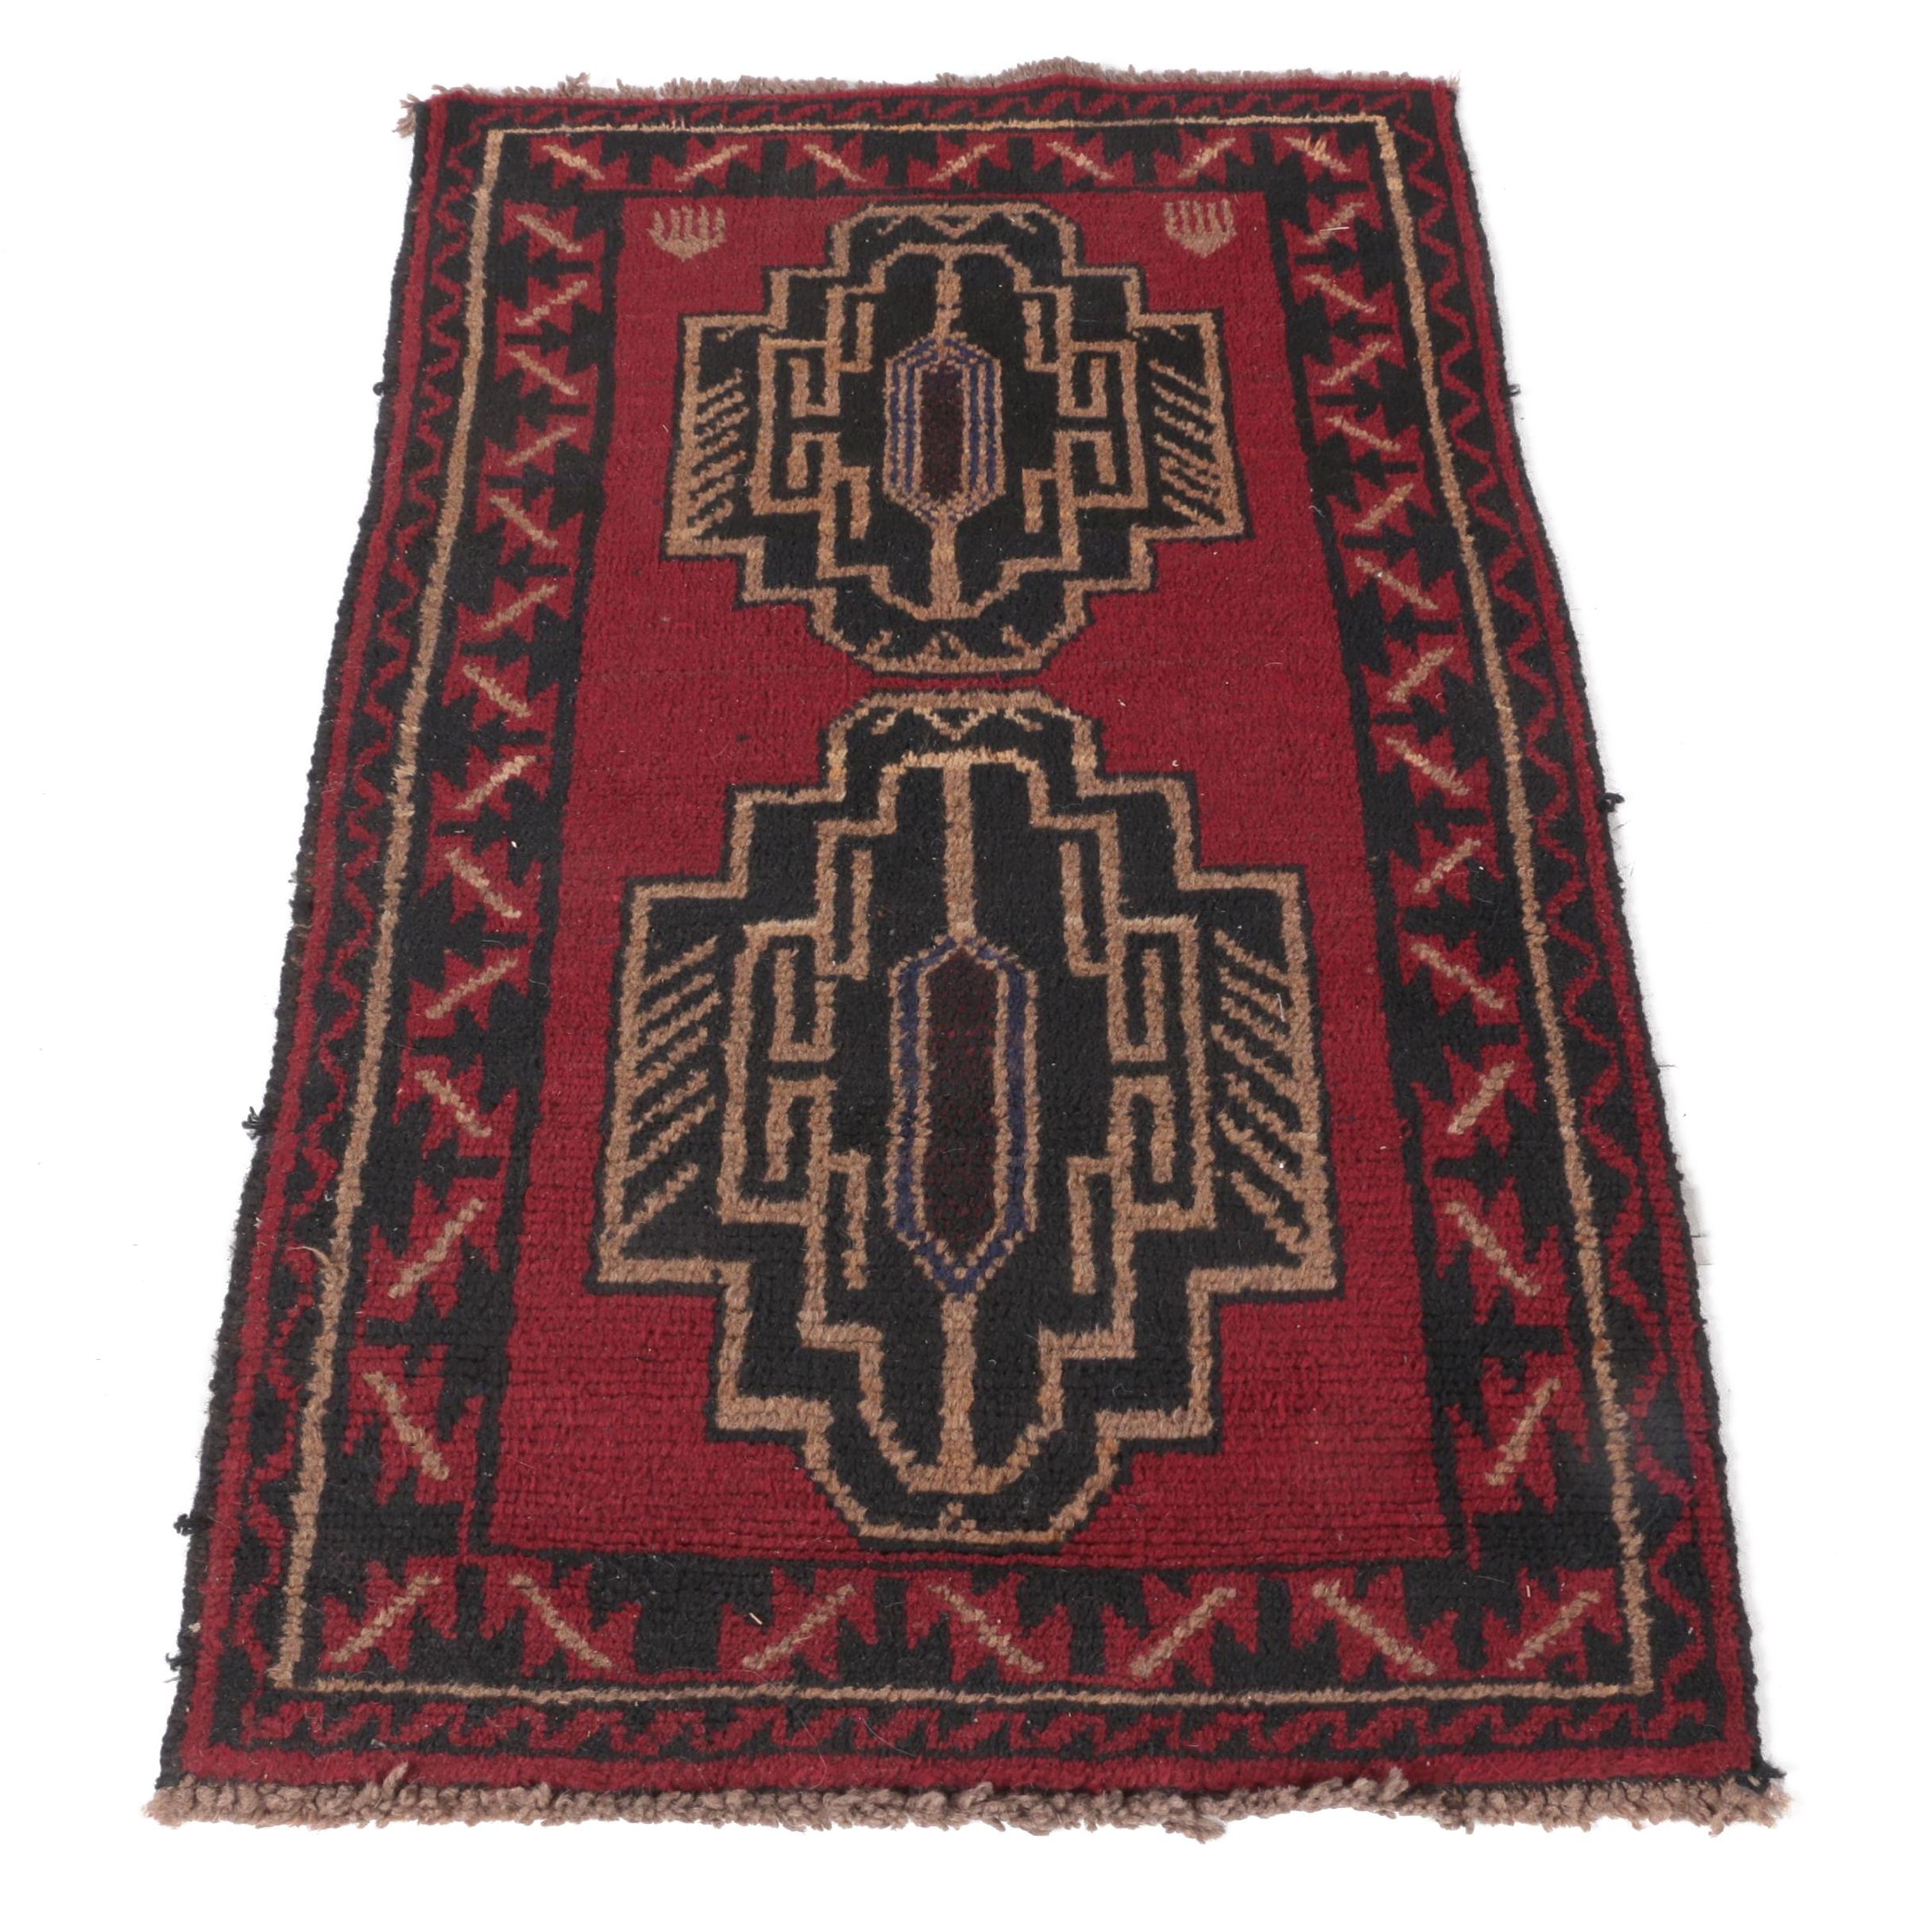 Vintage Hand-Knotted Caucasian Accent Rug